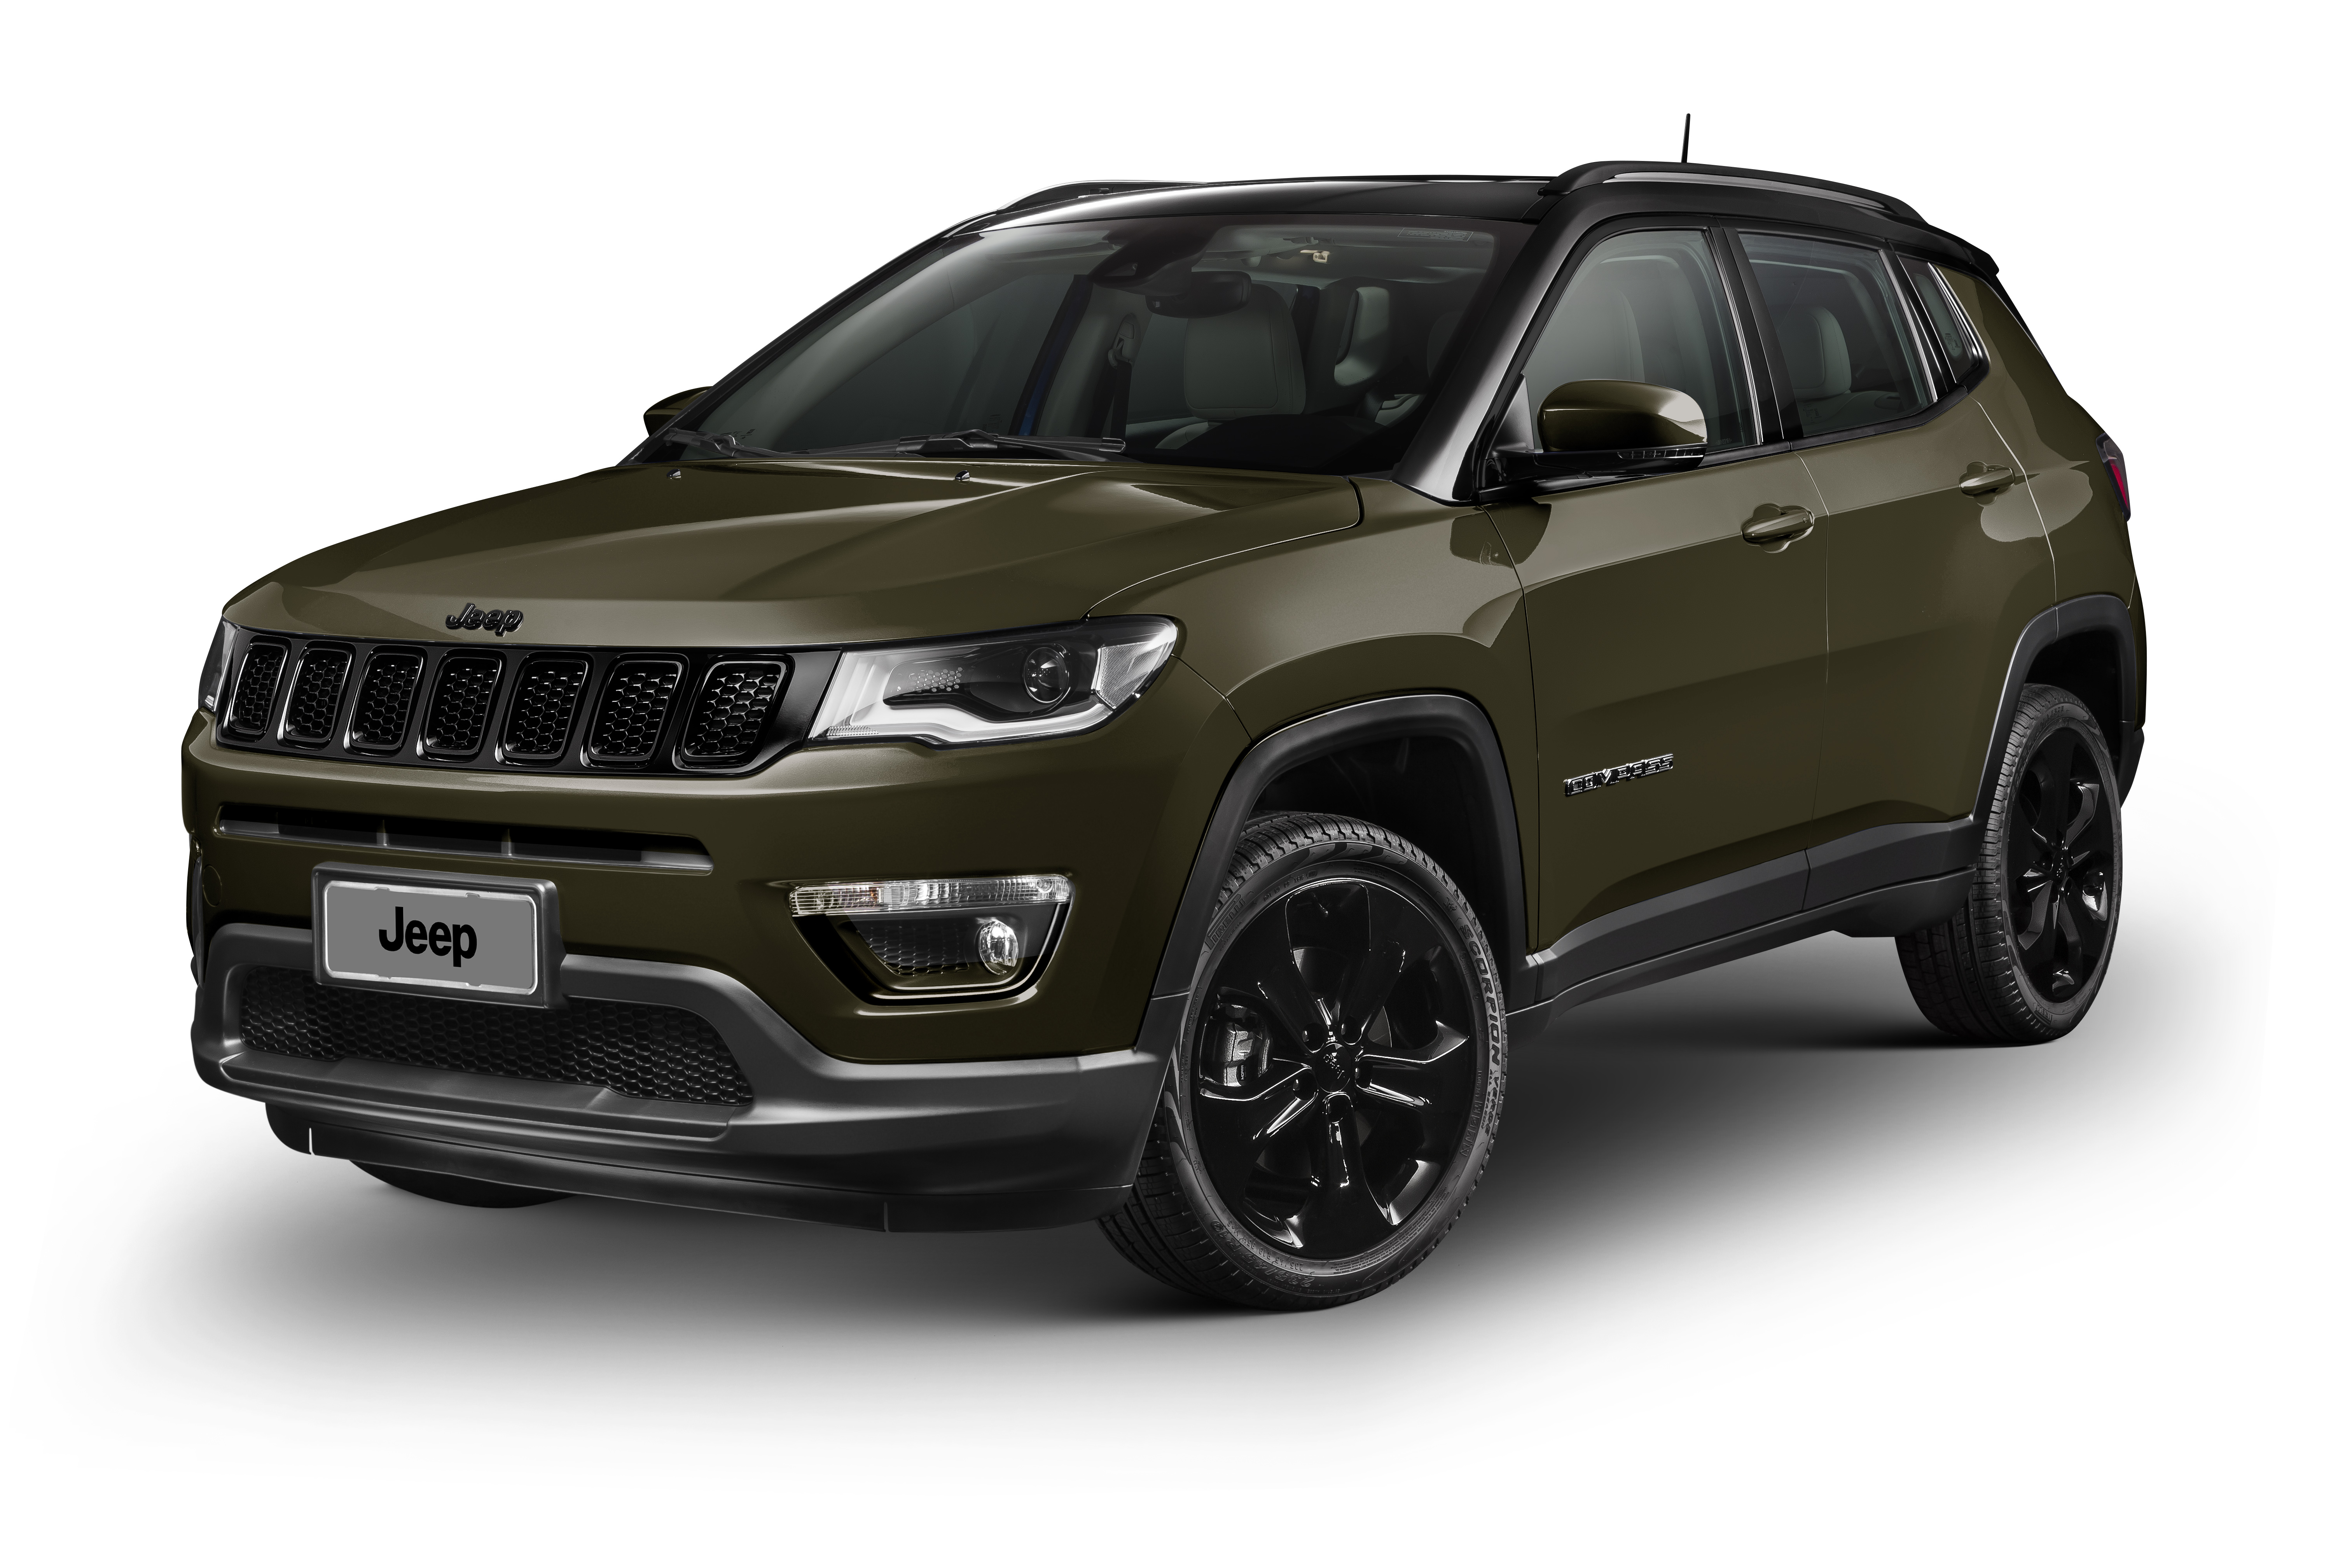 jeep_compass_night_eagle_my21_verde1.jpeg